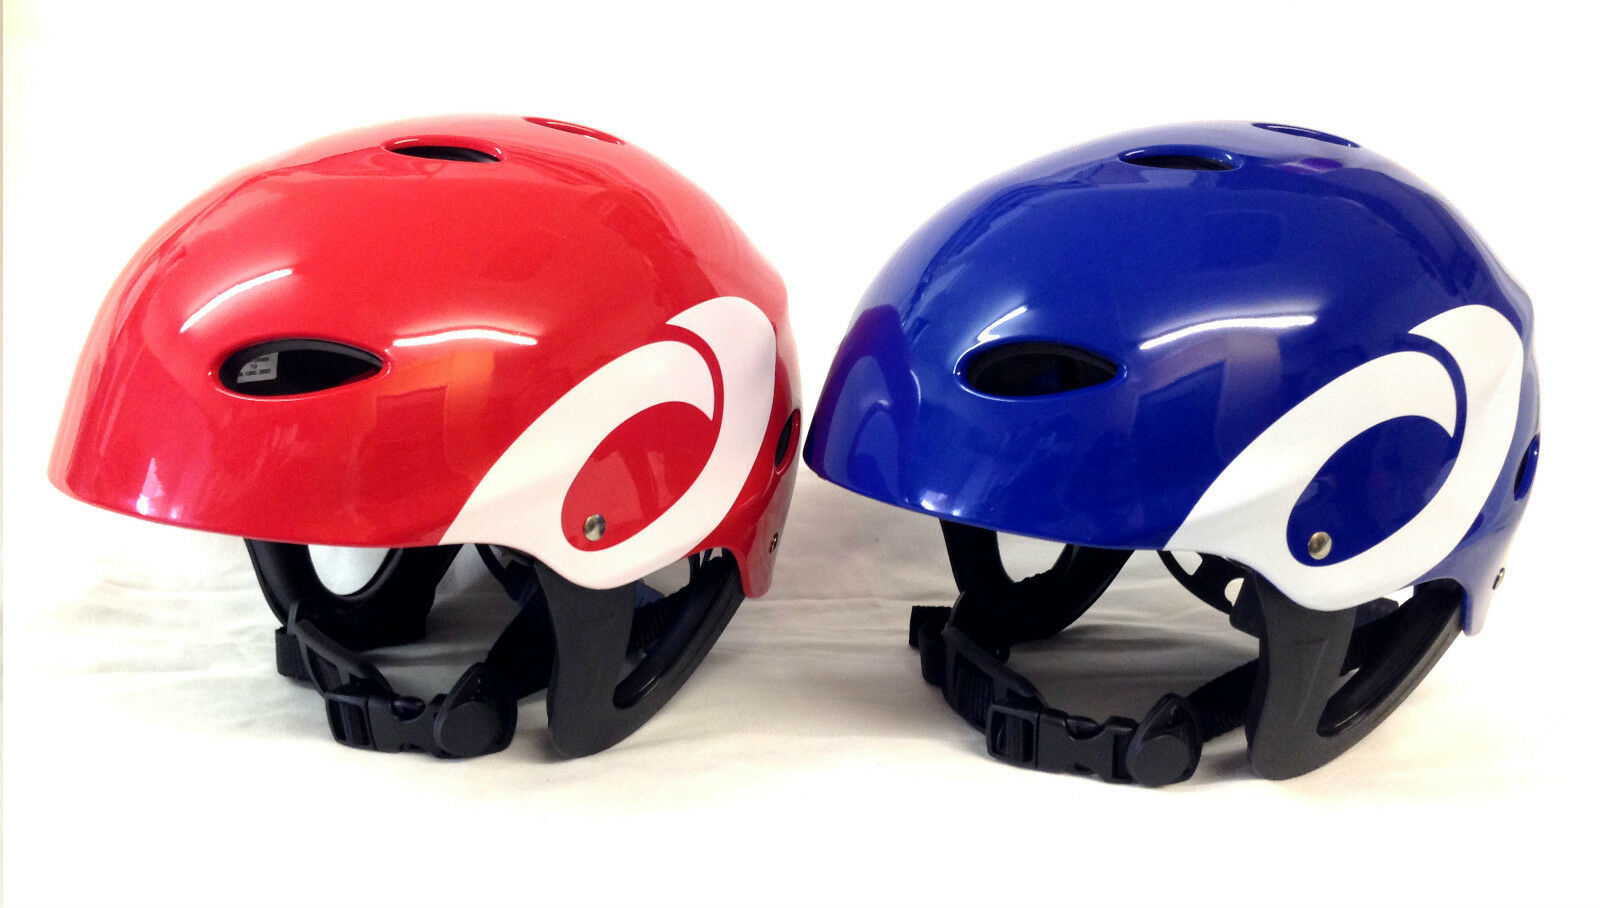 Osprey Kayak   Canoe   Watersports Safety Helmet. bluee or Red. Sizes S, M, L